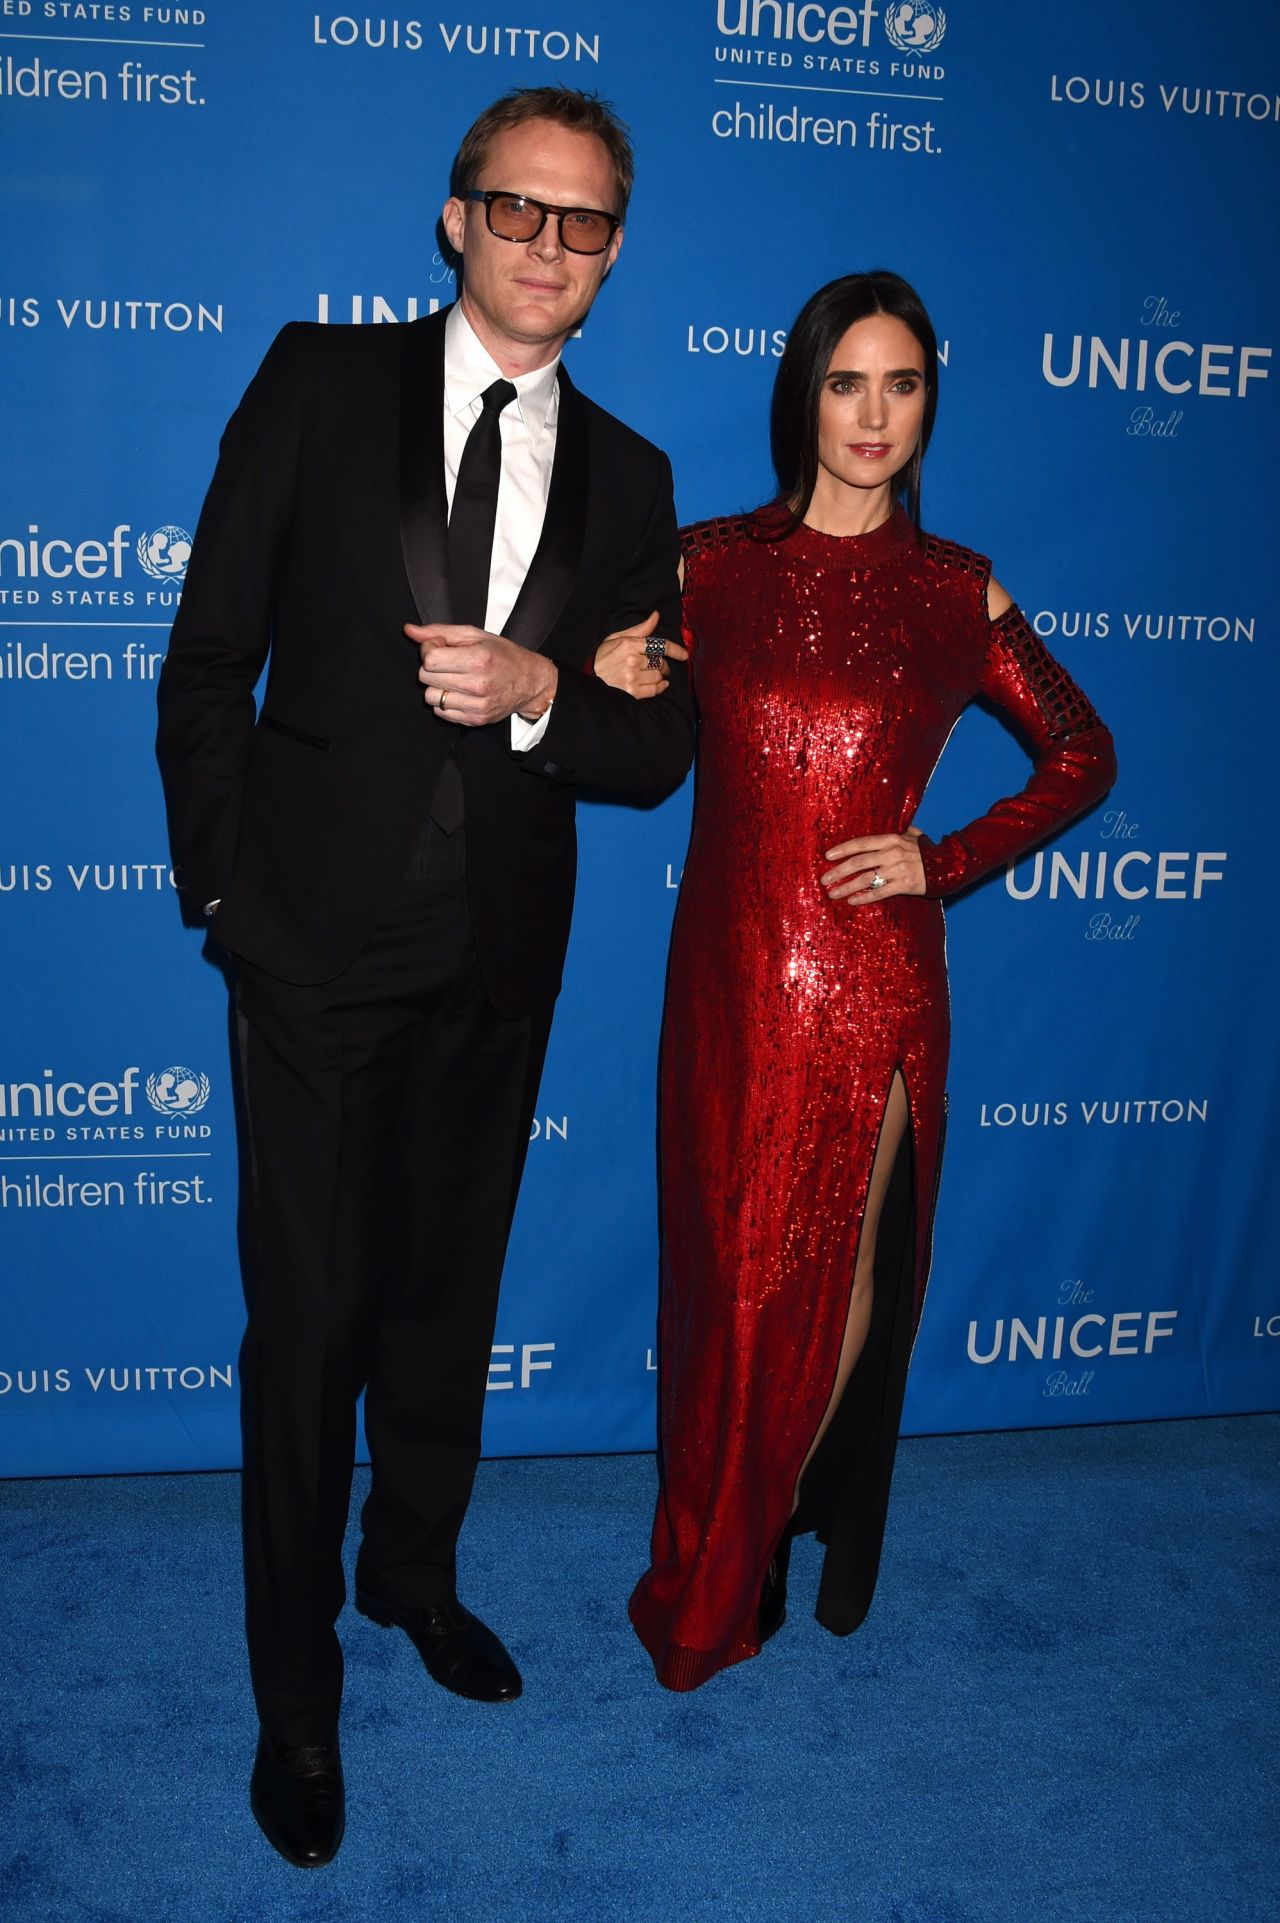 jennifer-connelly-6th-biennial-unicef-ball-in-beverly-hills-1-12-2016-2